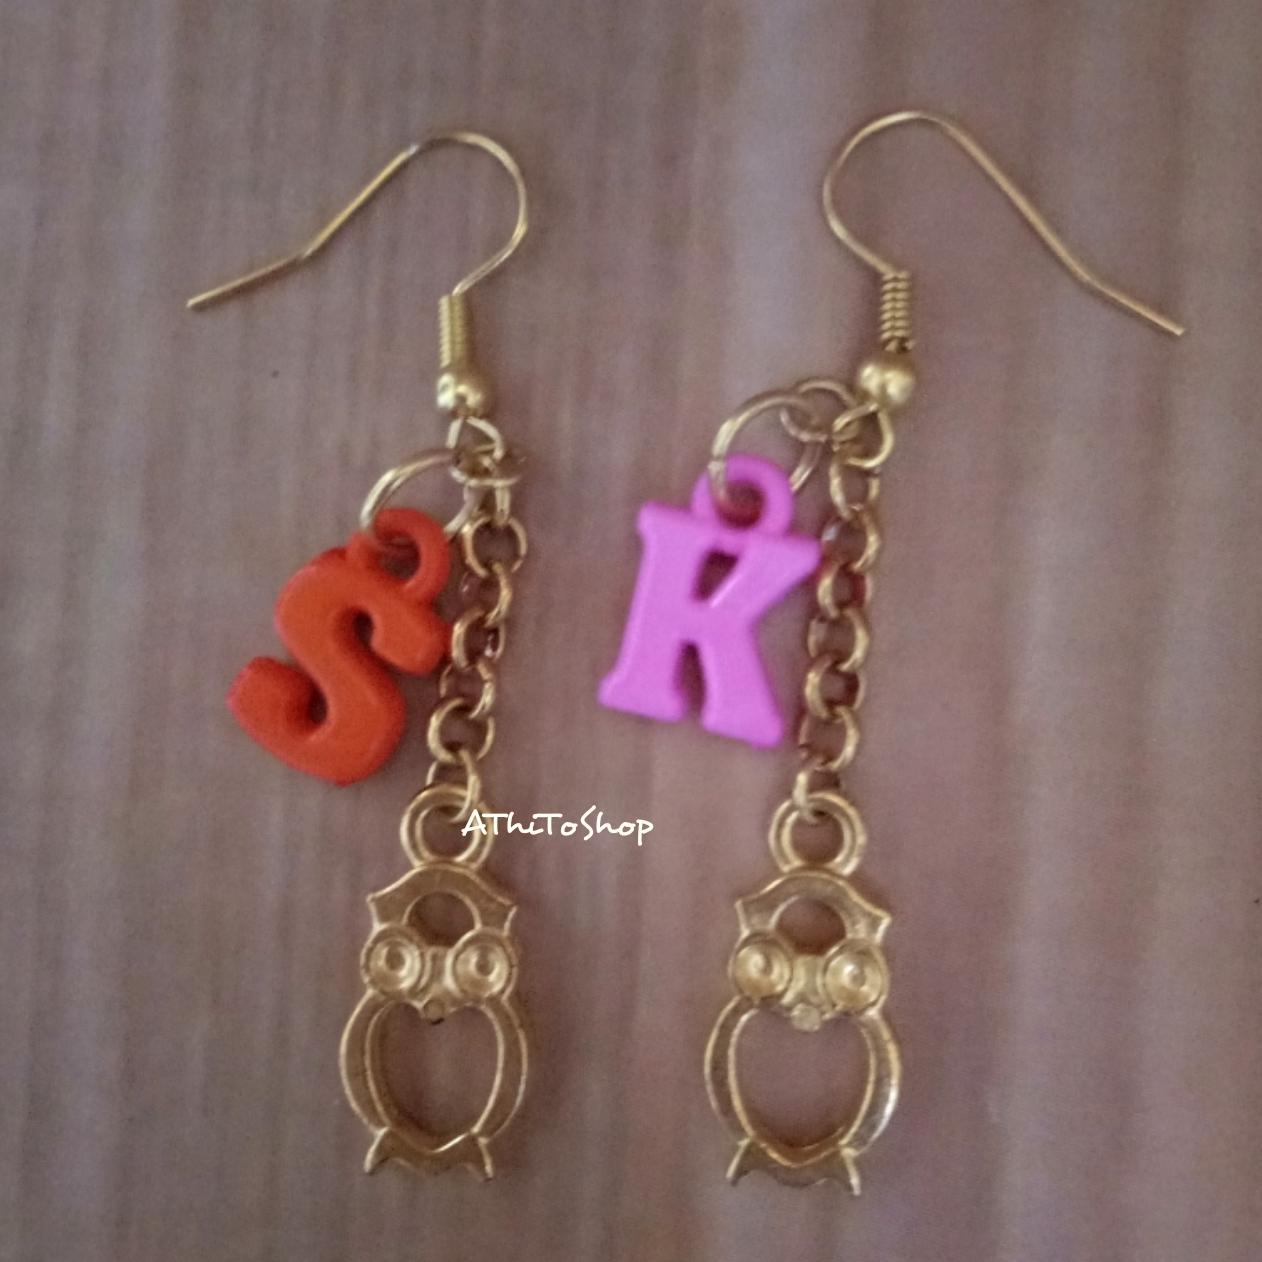 Rp 15.000 AThiToShop Anting ...